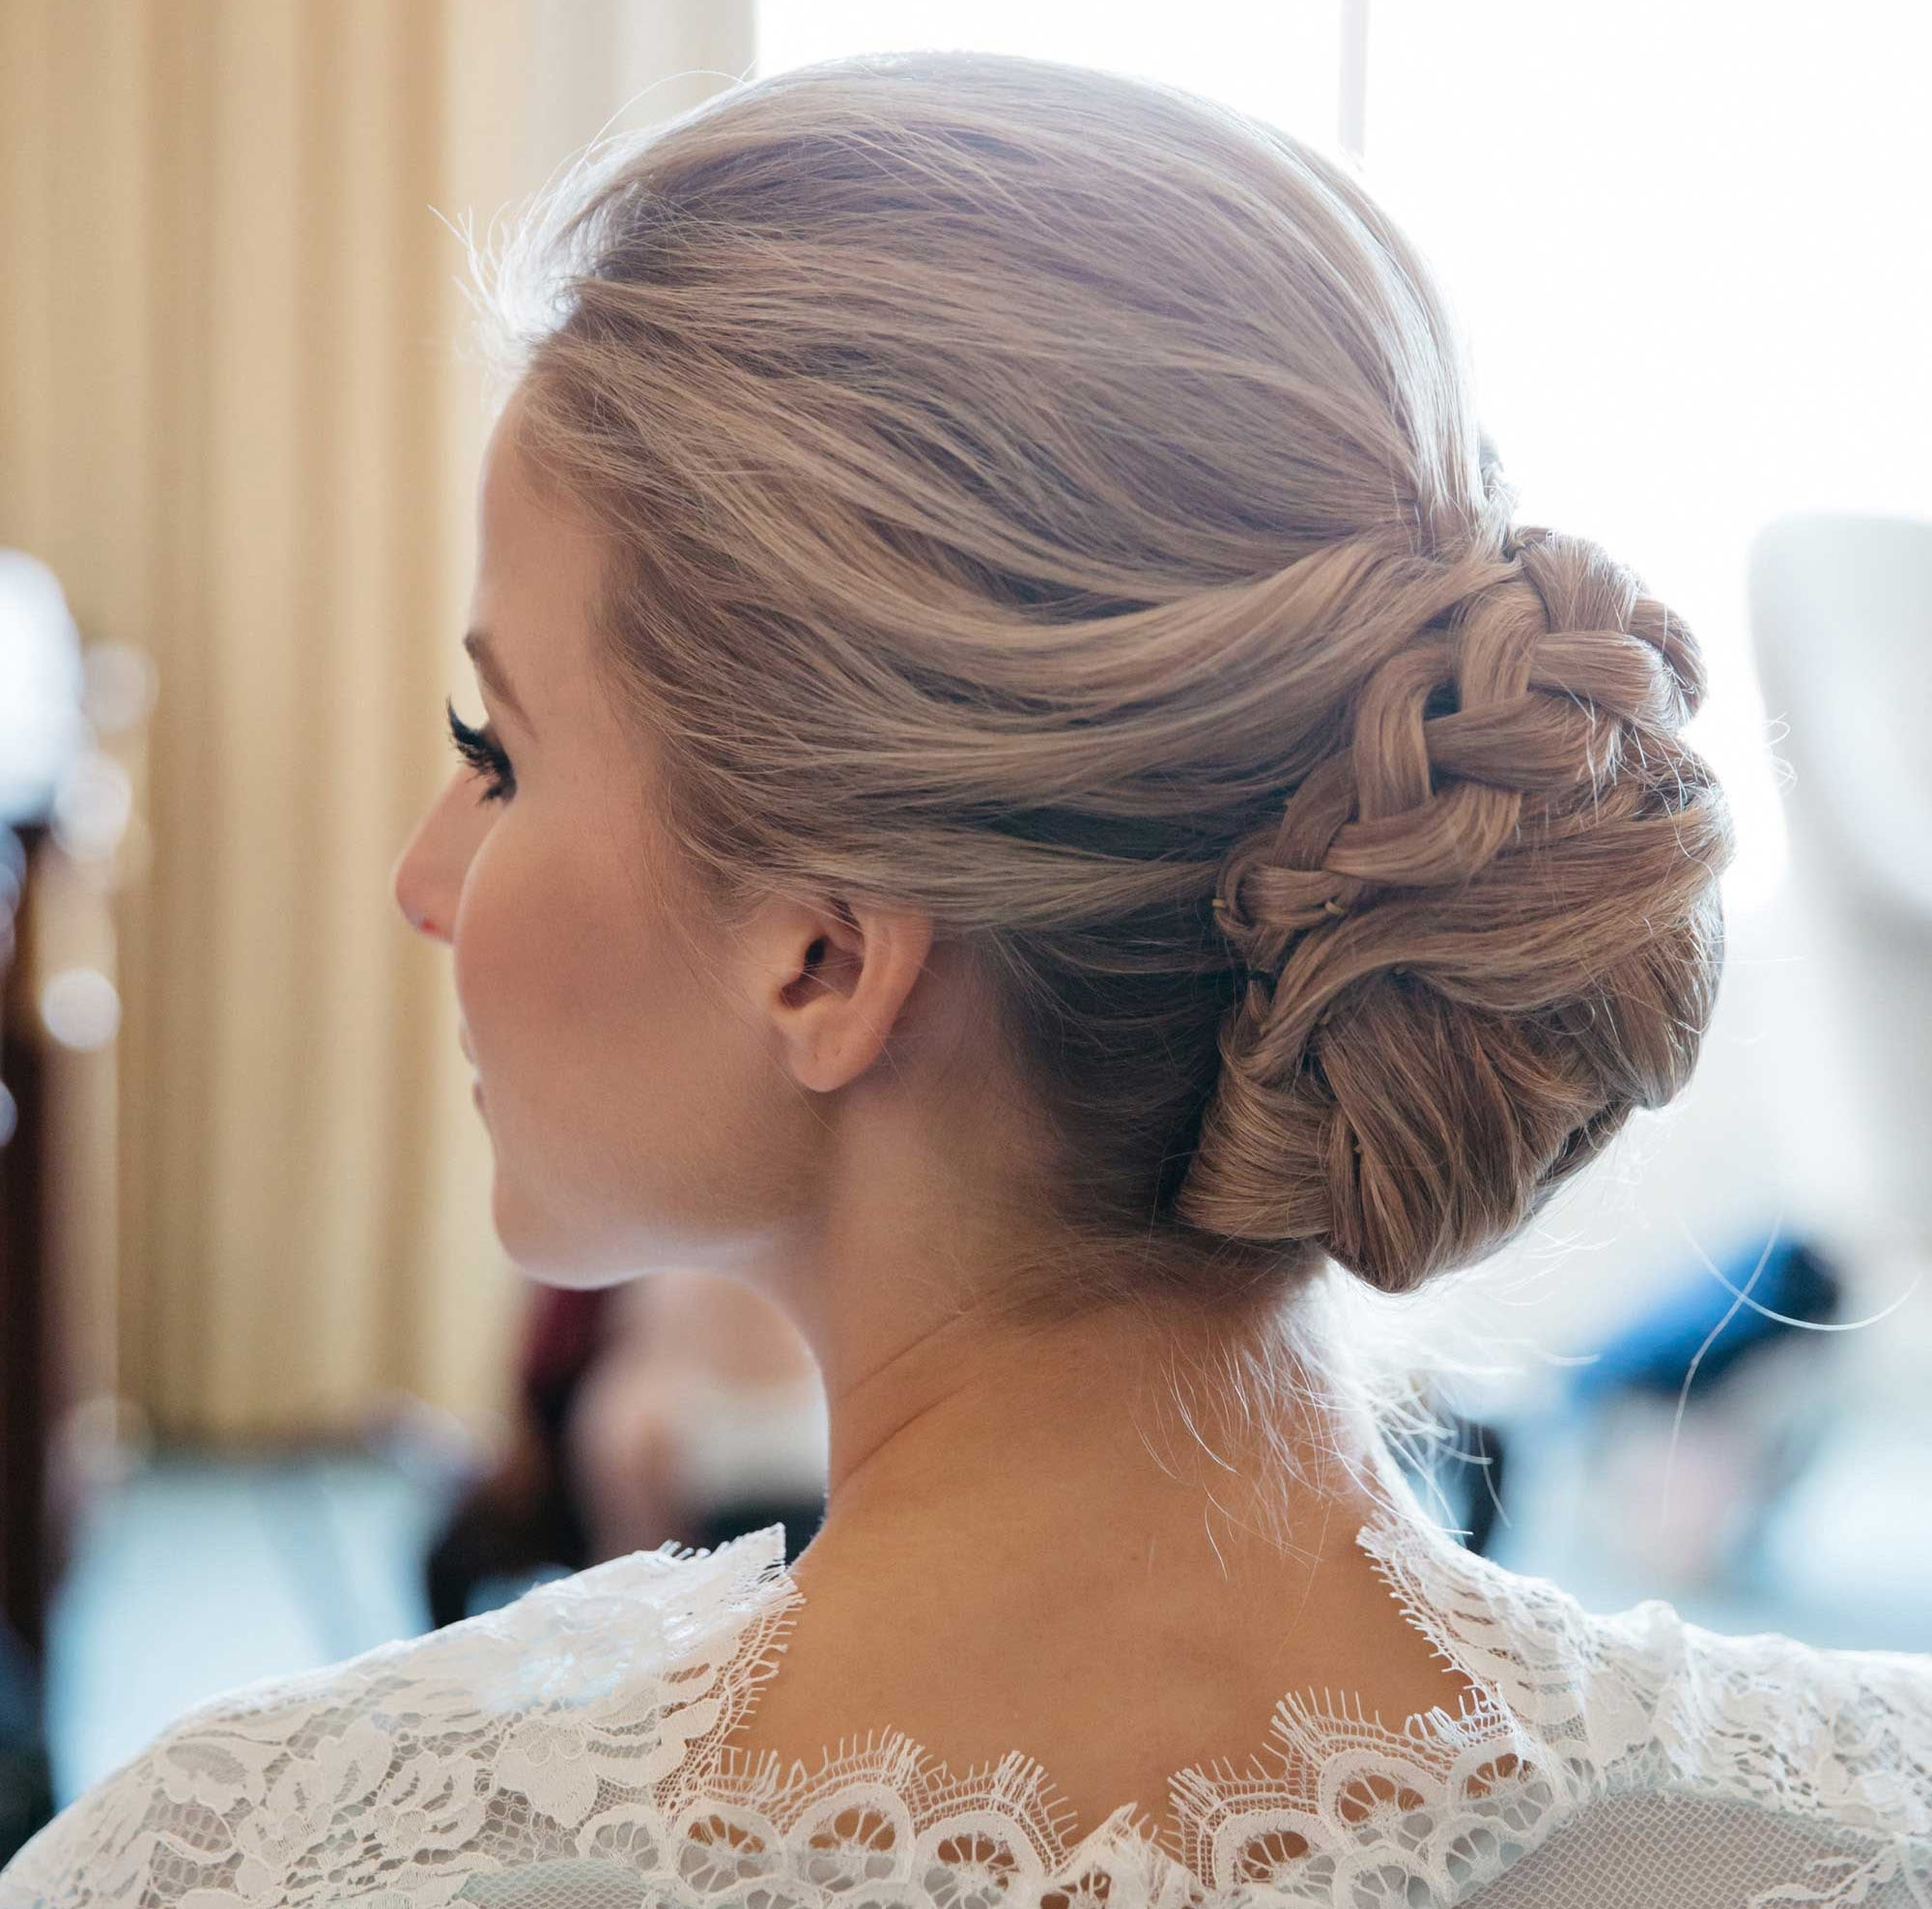 Braided Hairstyles: 5 Ideas For Your Wedding Look – Inside Weddings With Regard To Well Known Classic Wedding Hairstyles (View 3 of 15)